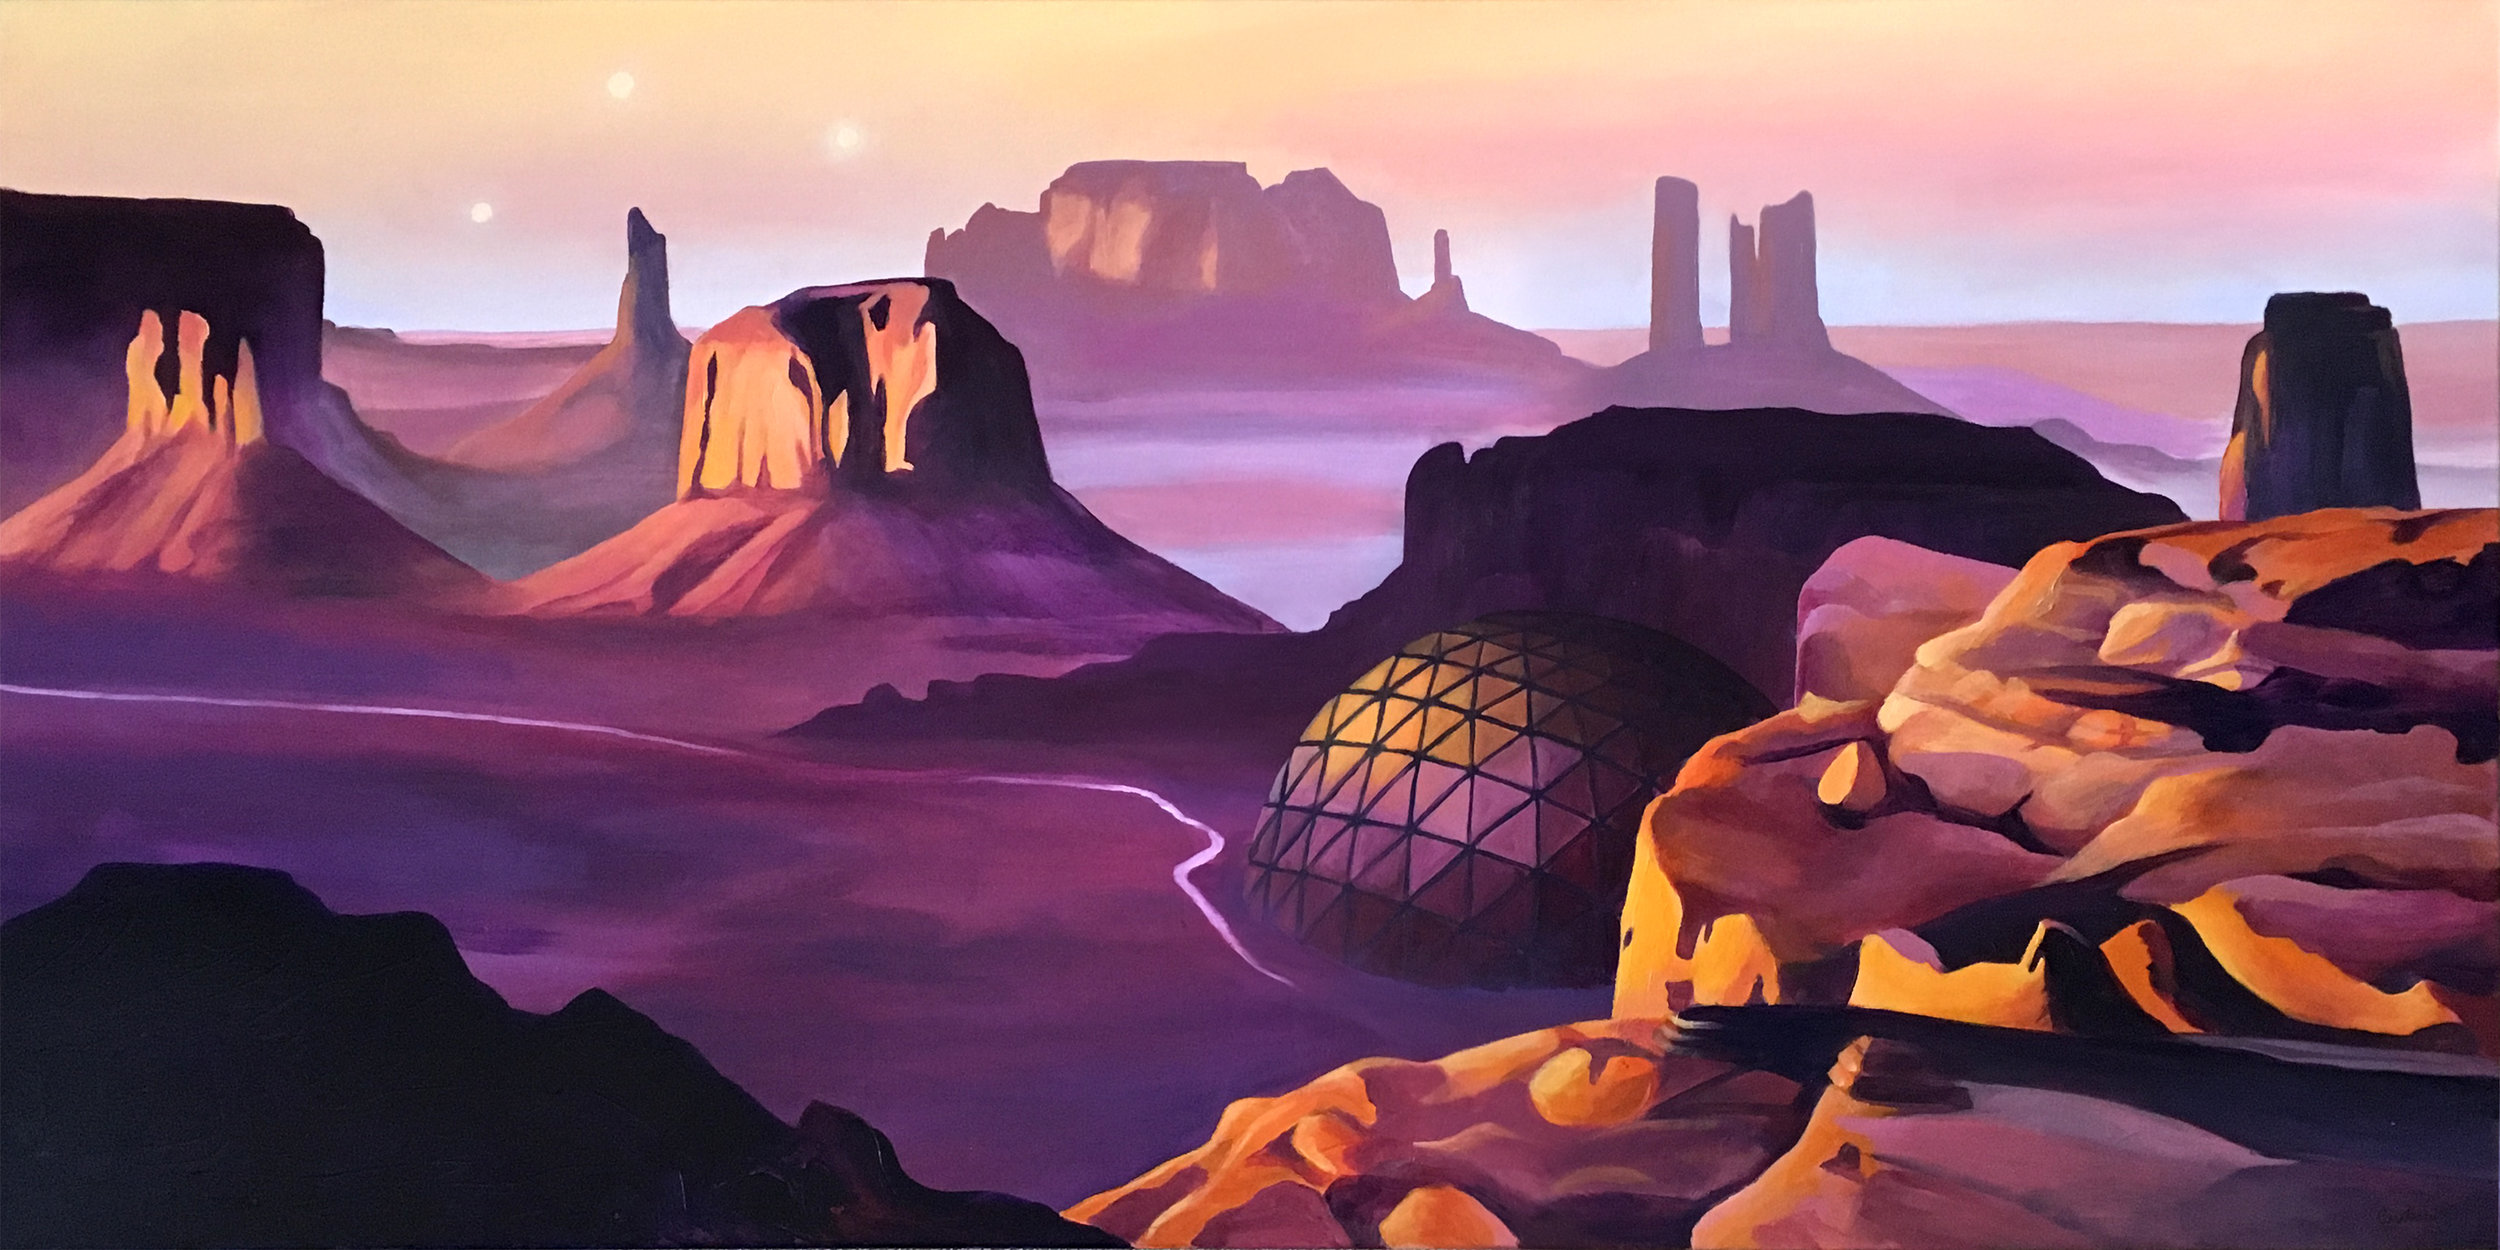 Ghosts of Monument Valley